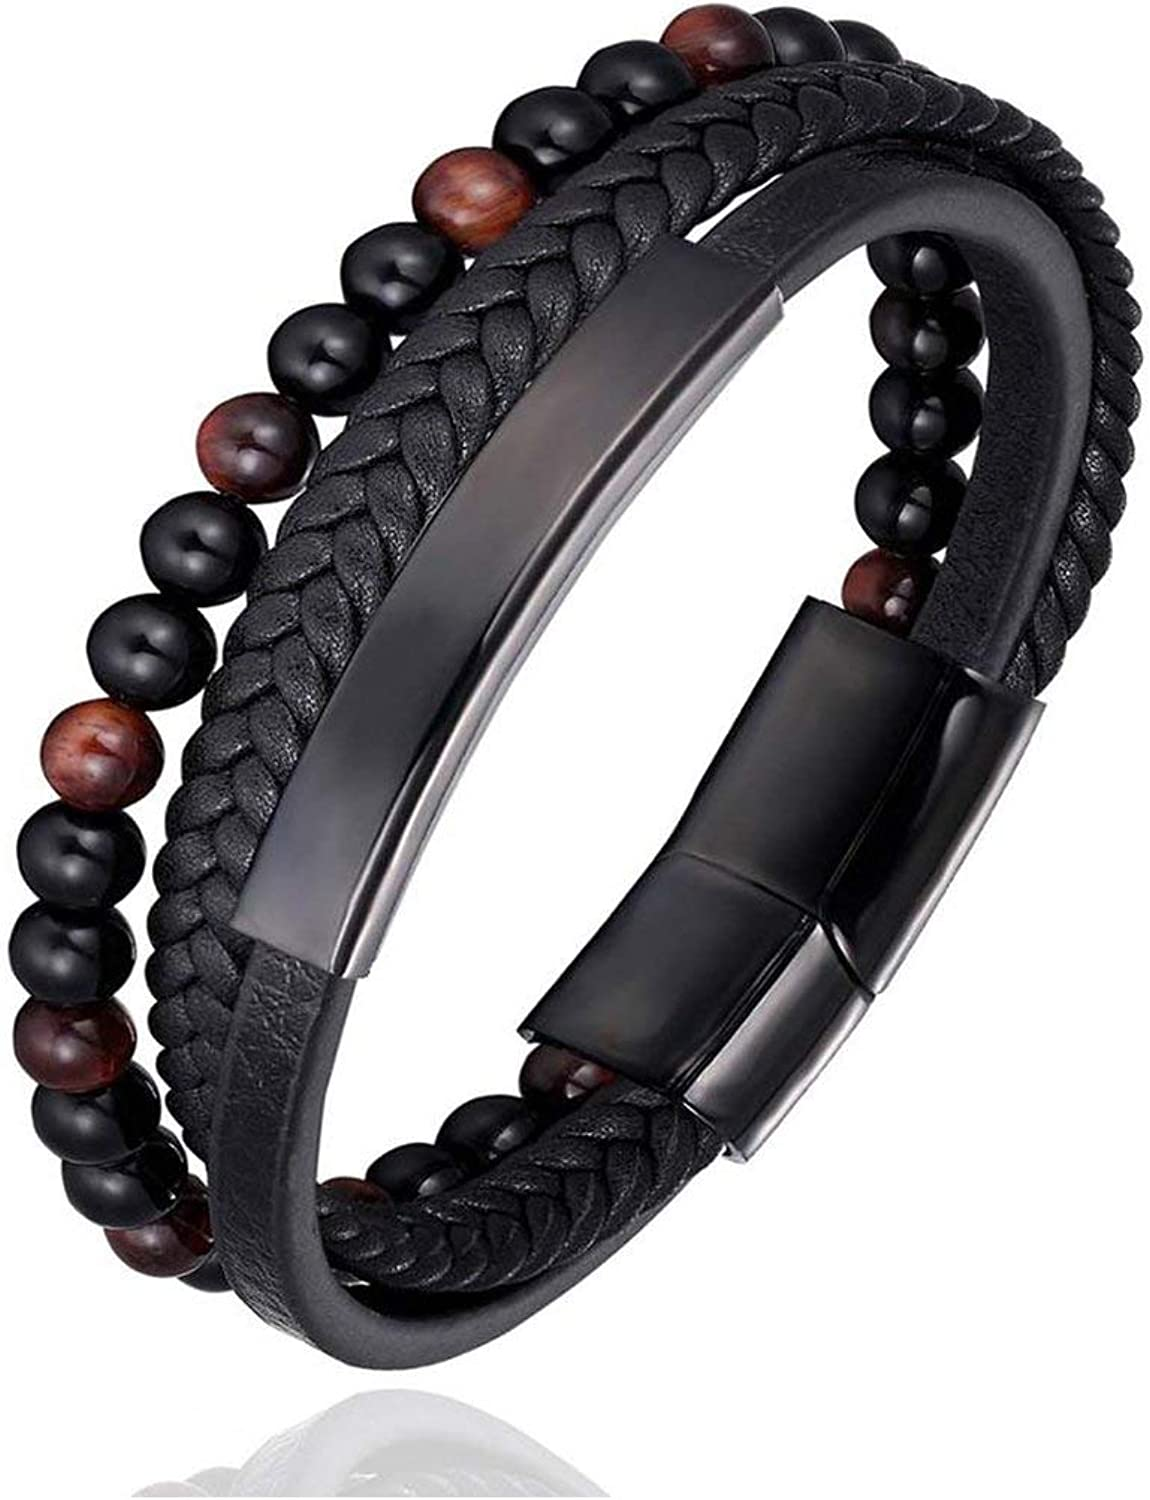 heartbeat-time Multi Layers Handmade Braided Genuine Leather Bracelet & Bangle for Men Stainless Steel Fashion Bangles Gifts